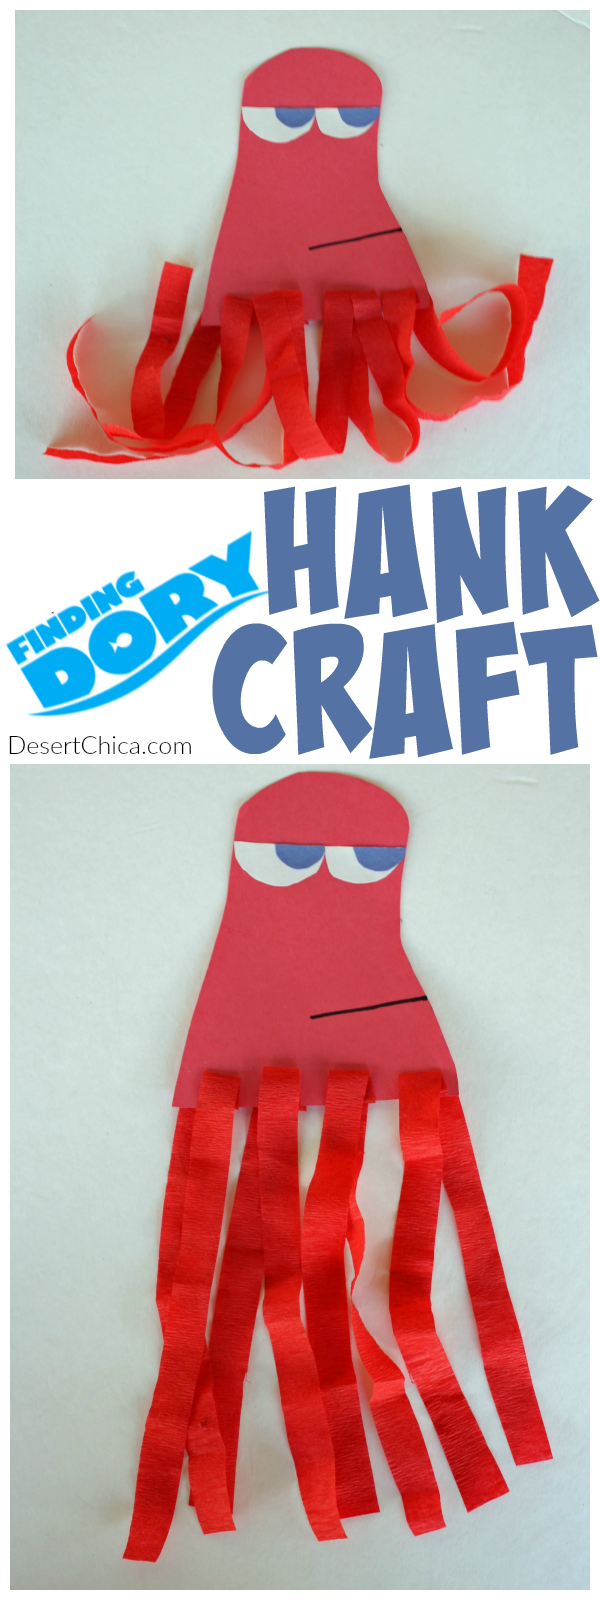 Finding dory craft hank the octopus desert chica for Finding dory crafts for preschoolers